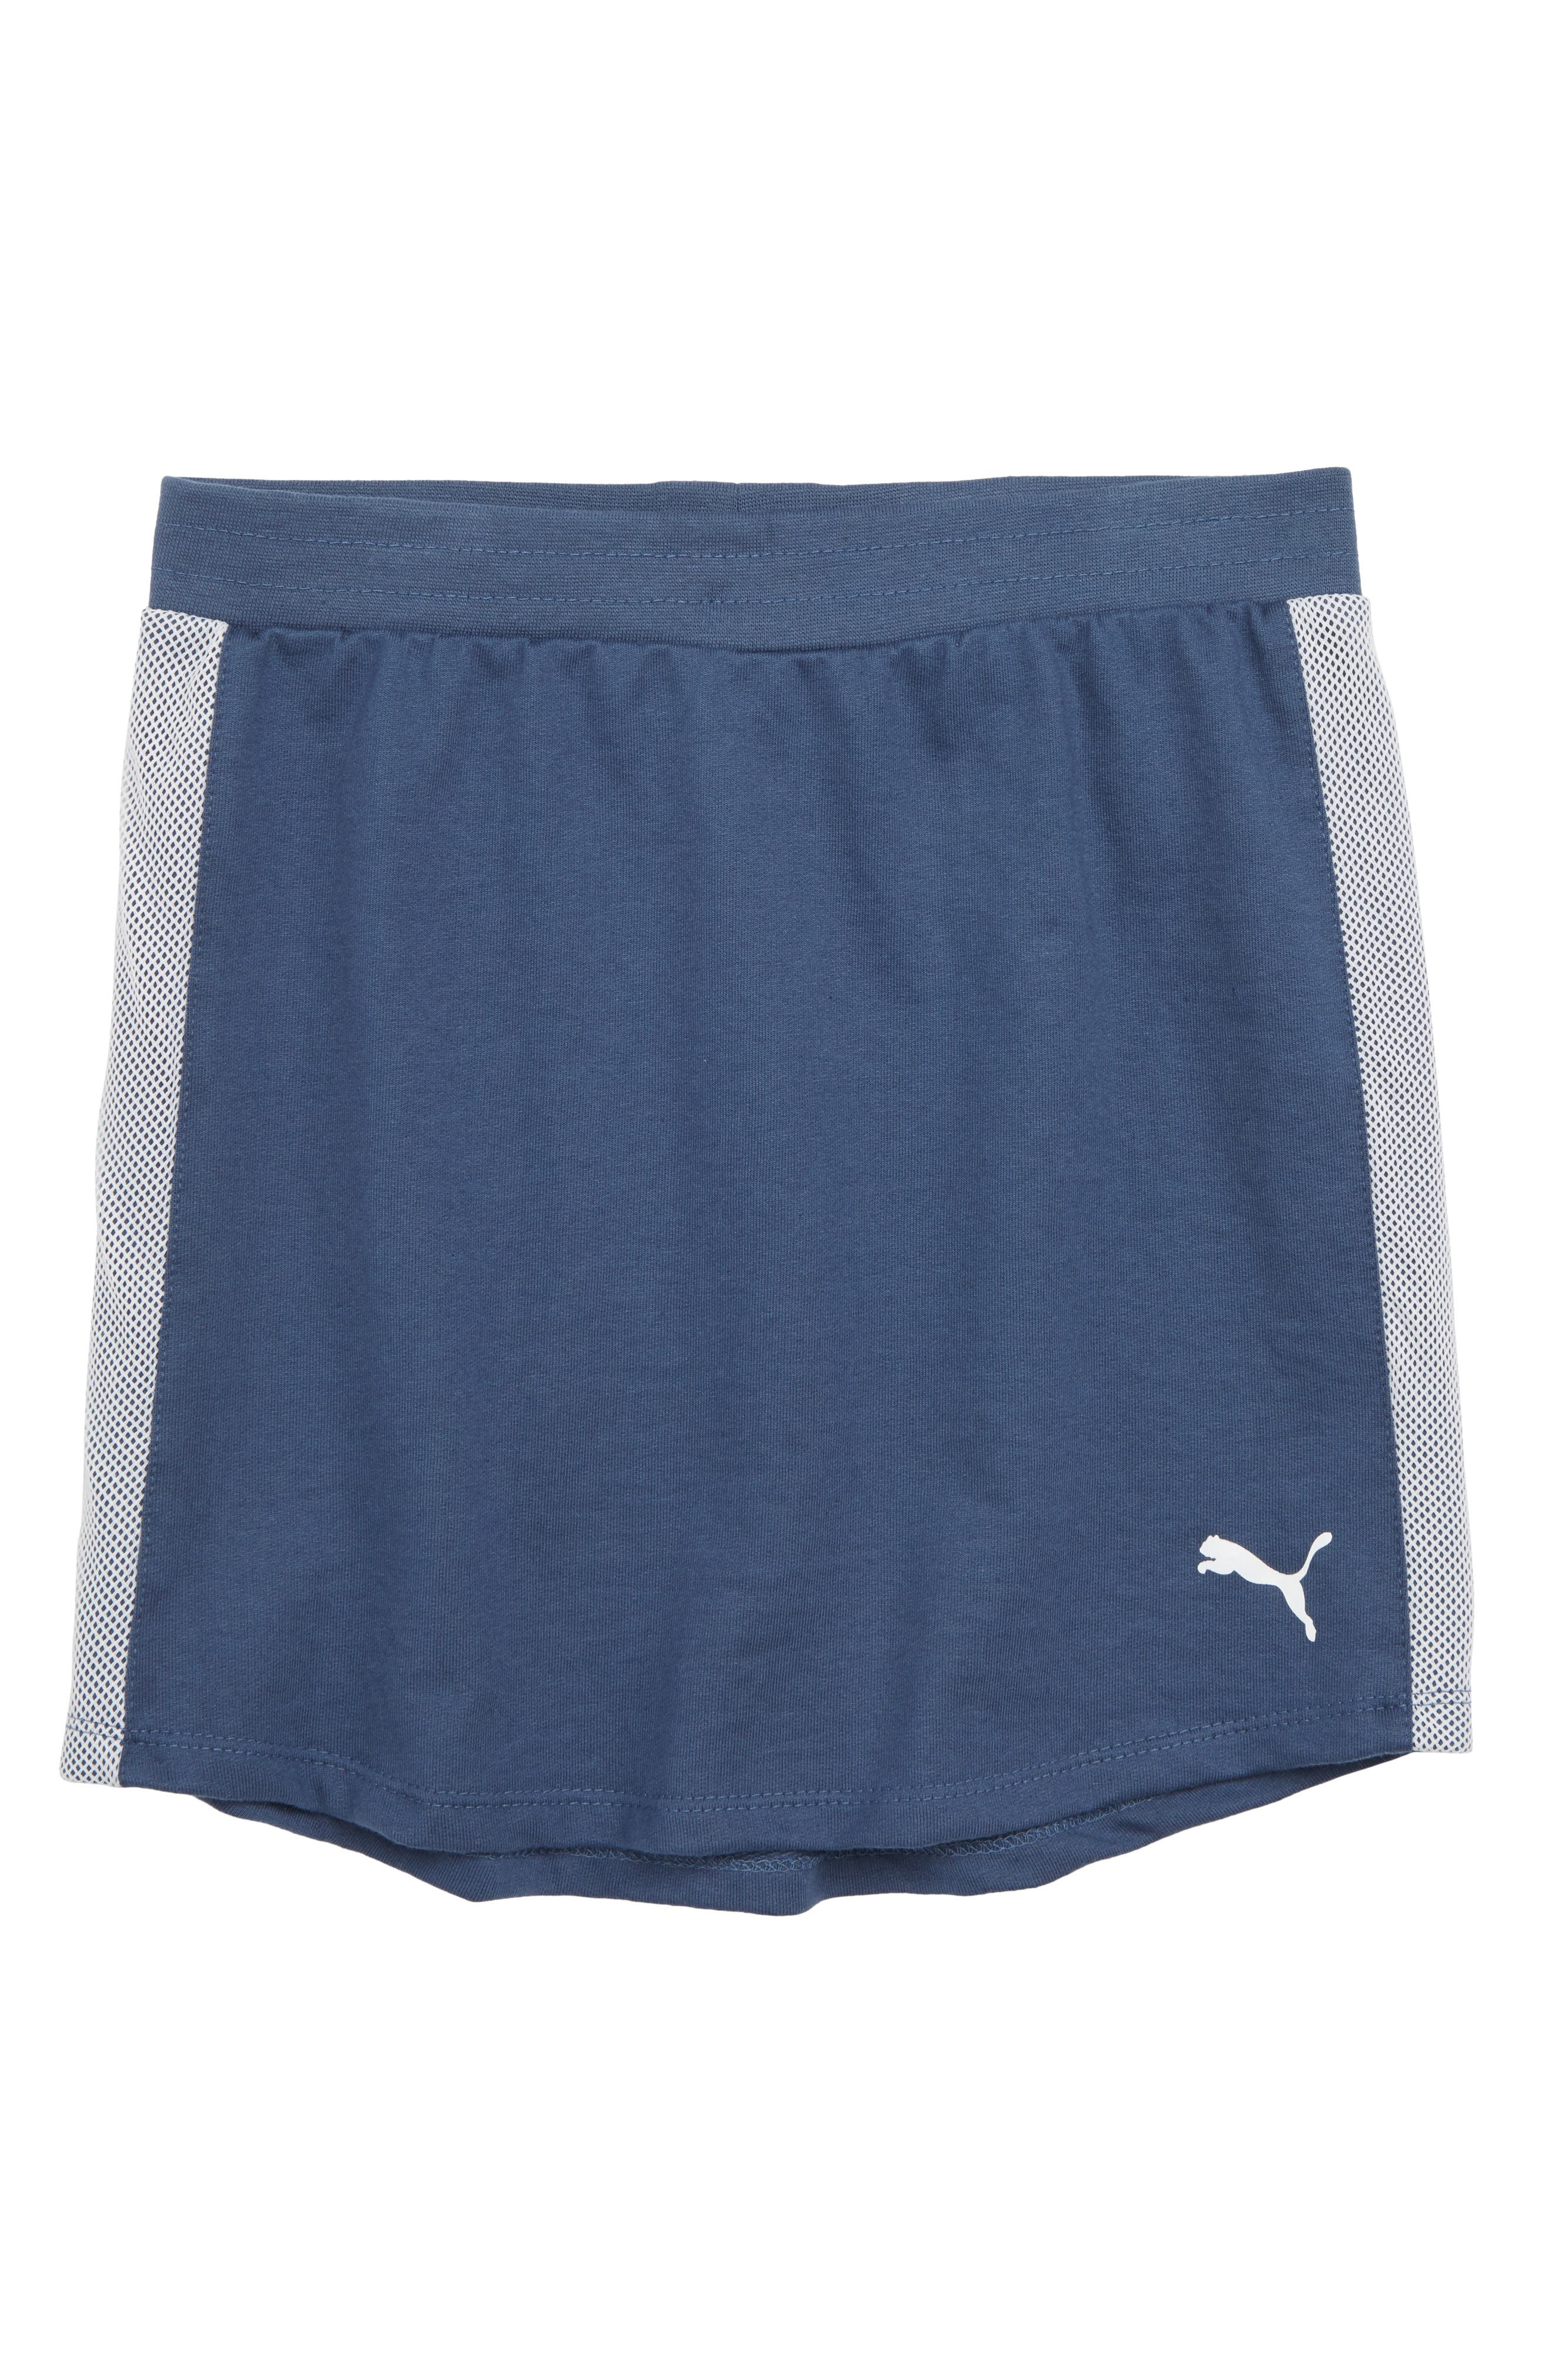 PUMA French Terry Skirt (Big Girls)